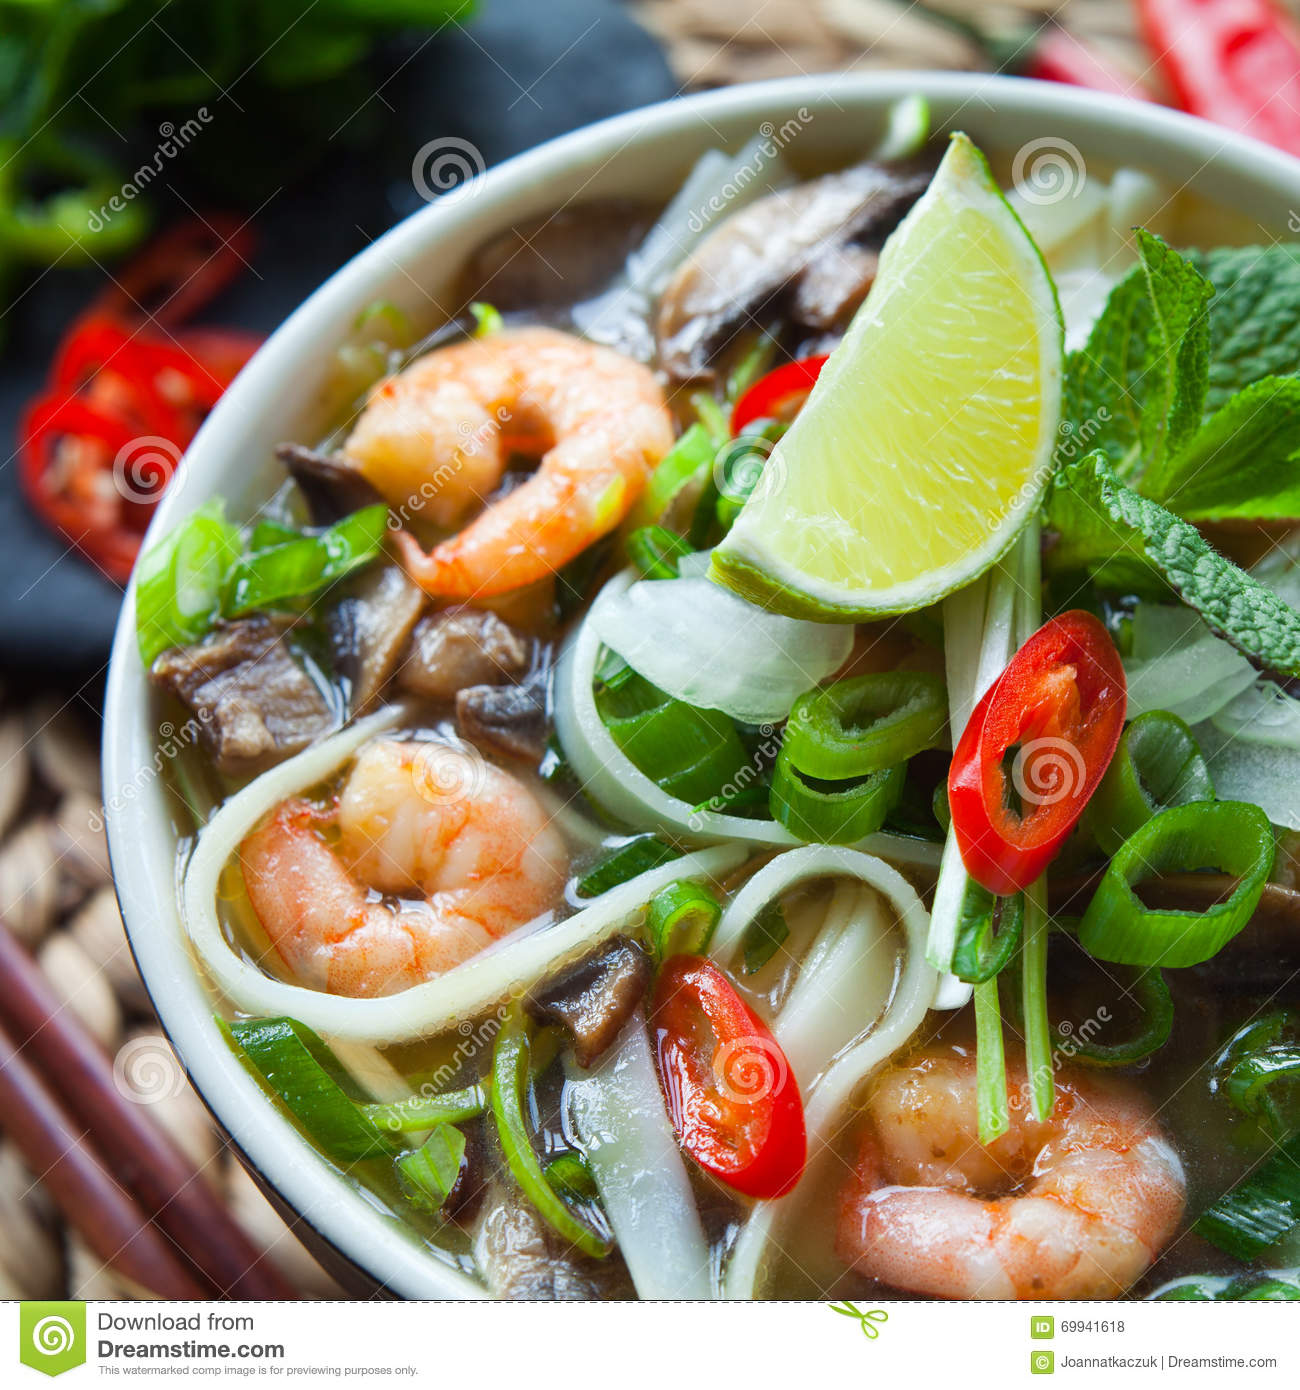 Download Vietnamese Pho Tom Yum Shrimp Prawn Soup Stock Photo - Image of food, green: 69941618